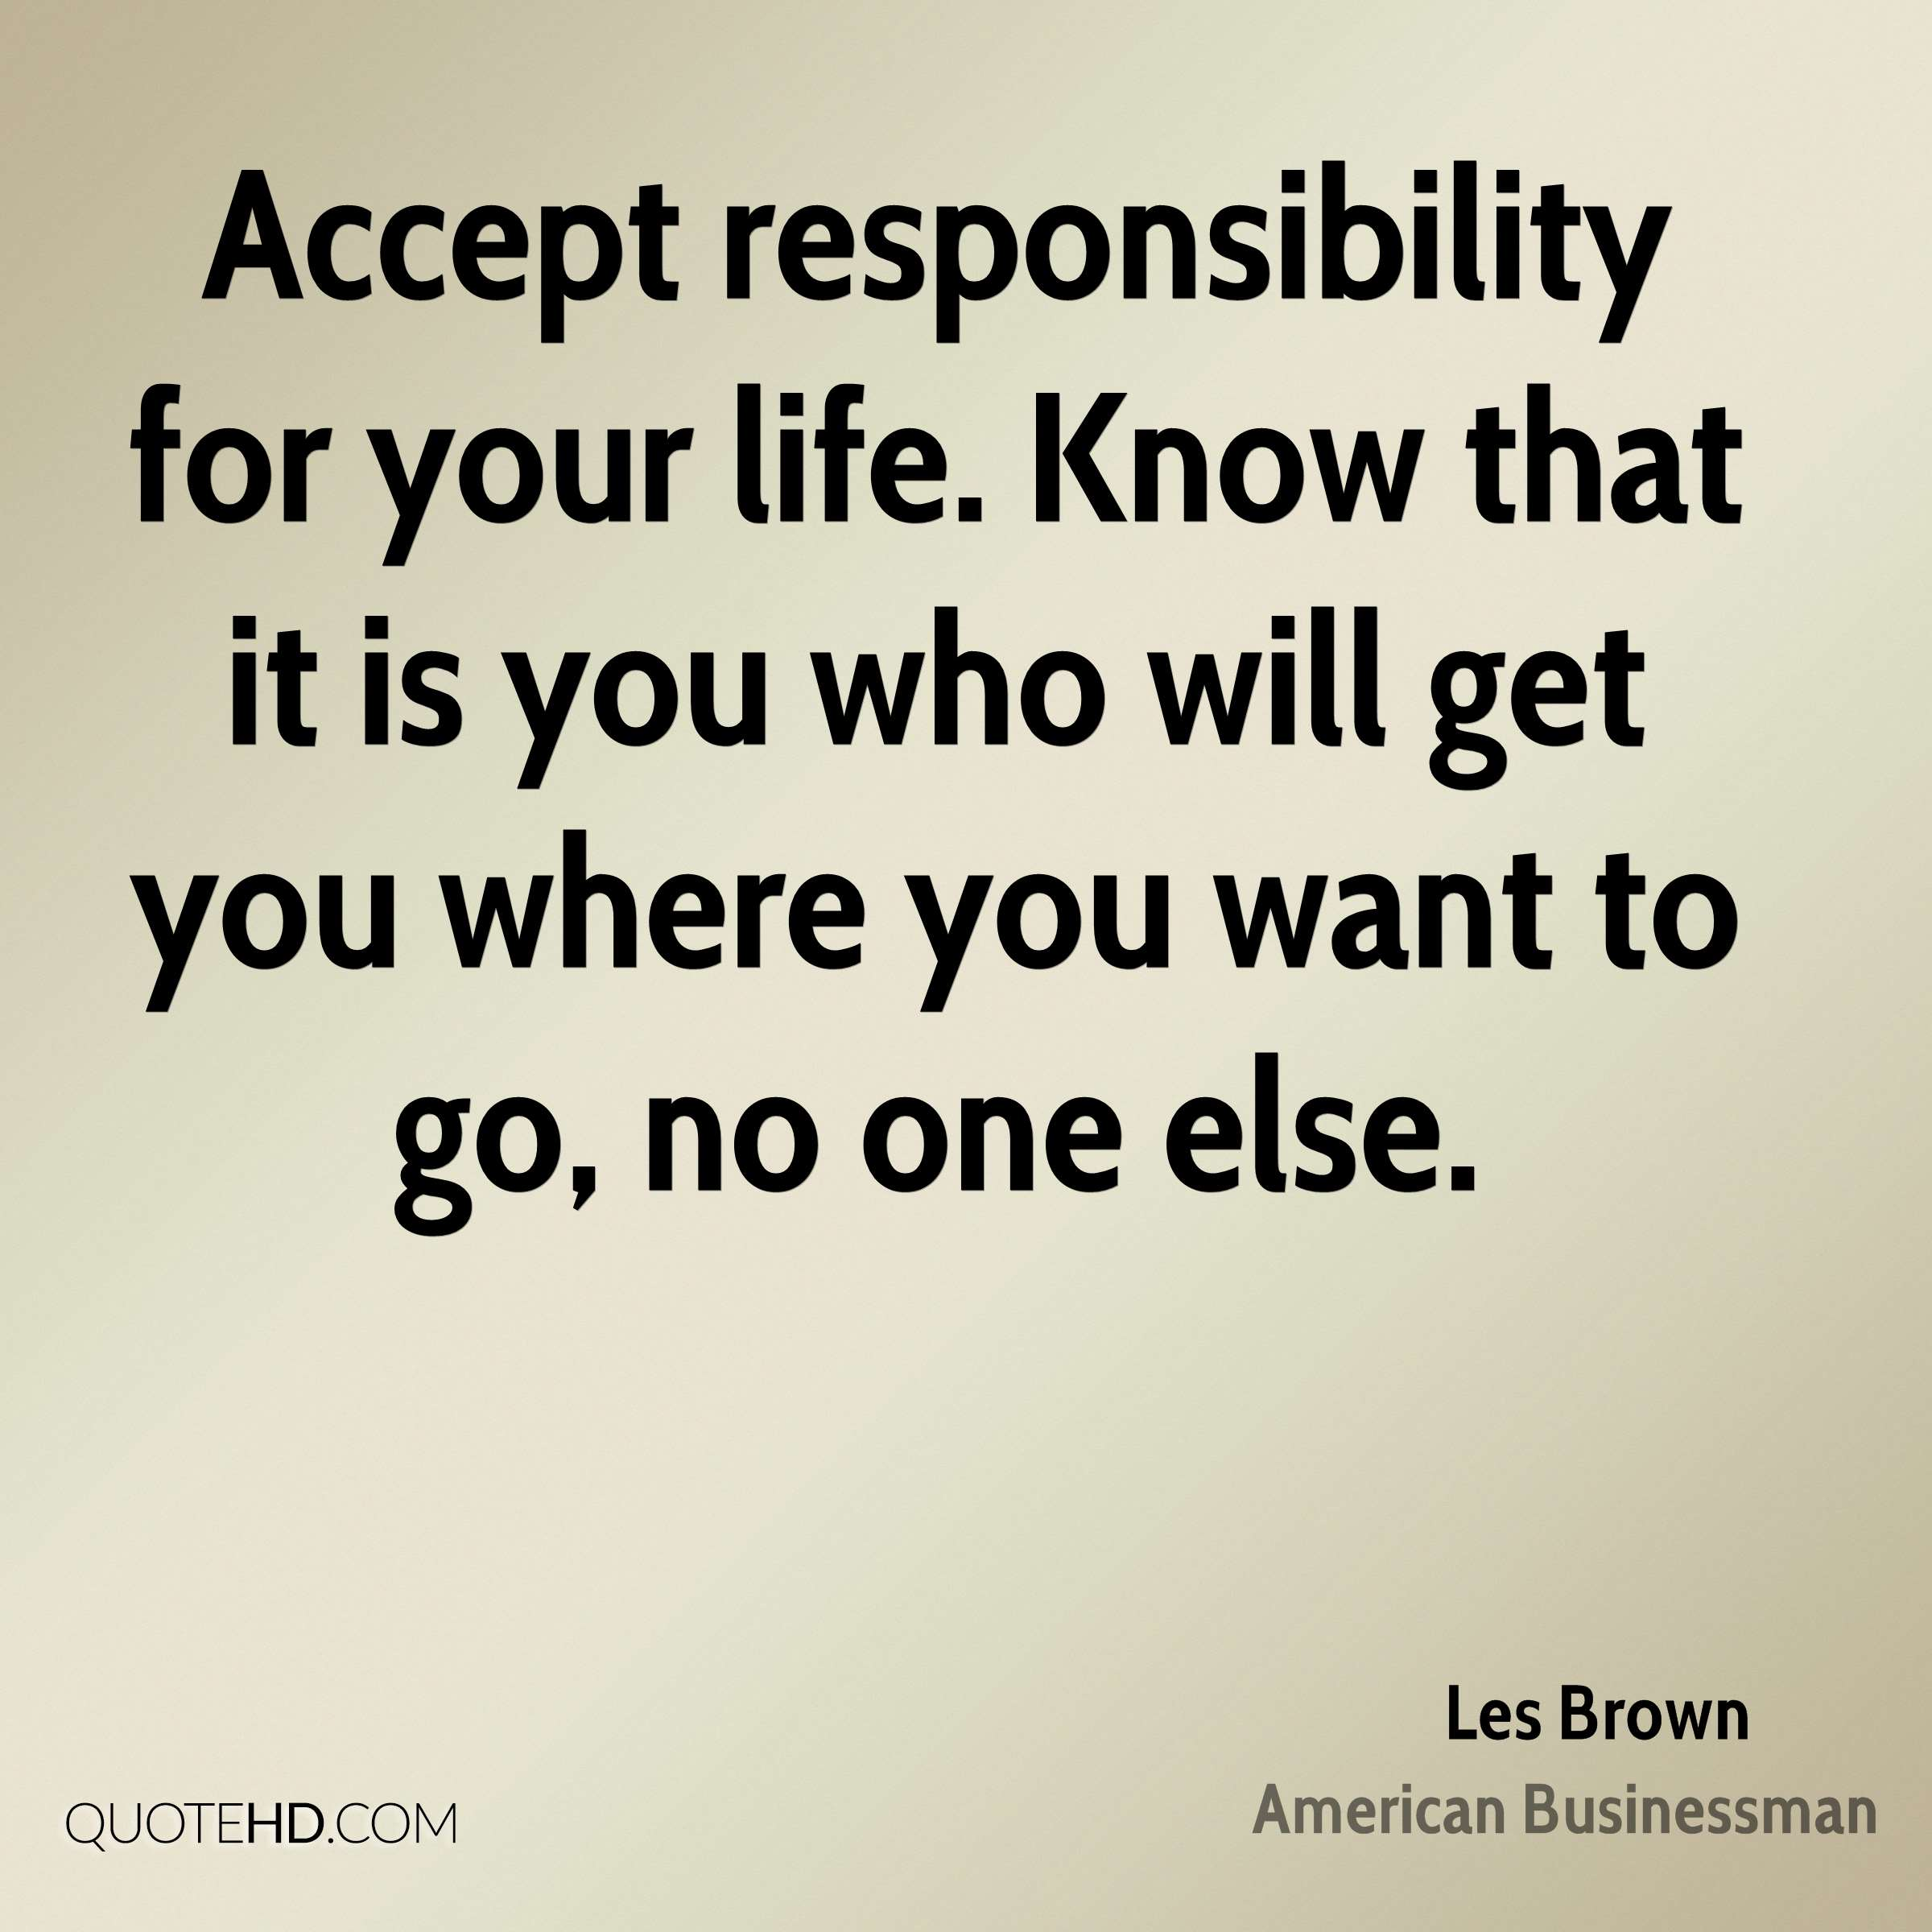 Les Brown Quotes Les Brown Life Quotes  Quotehd